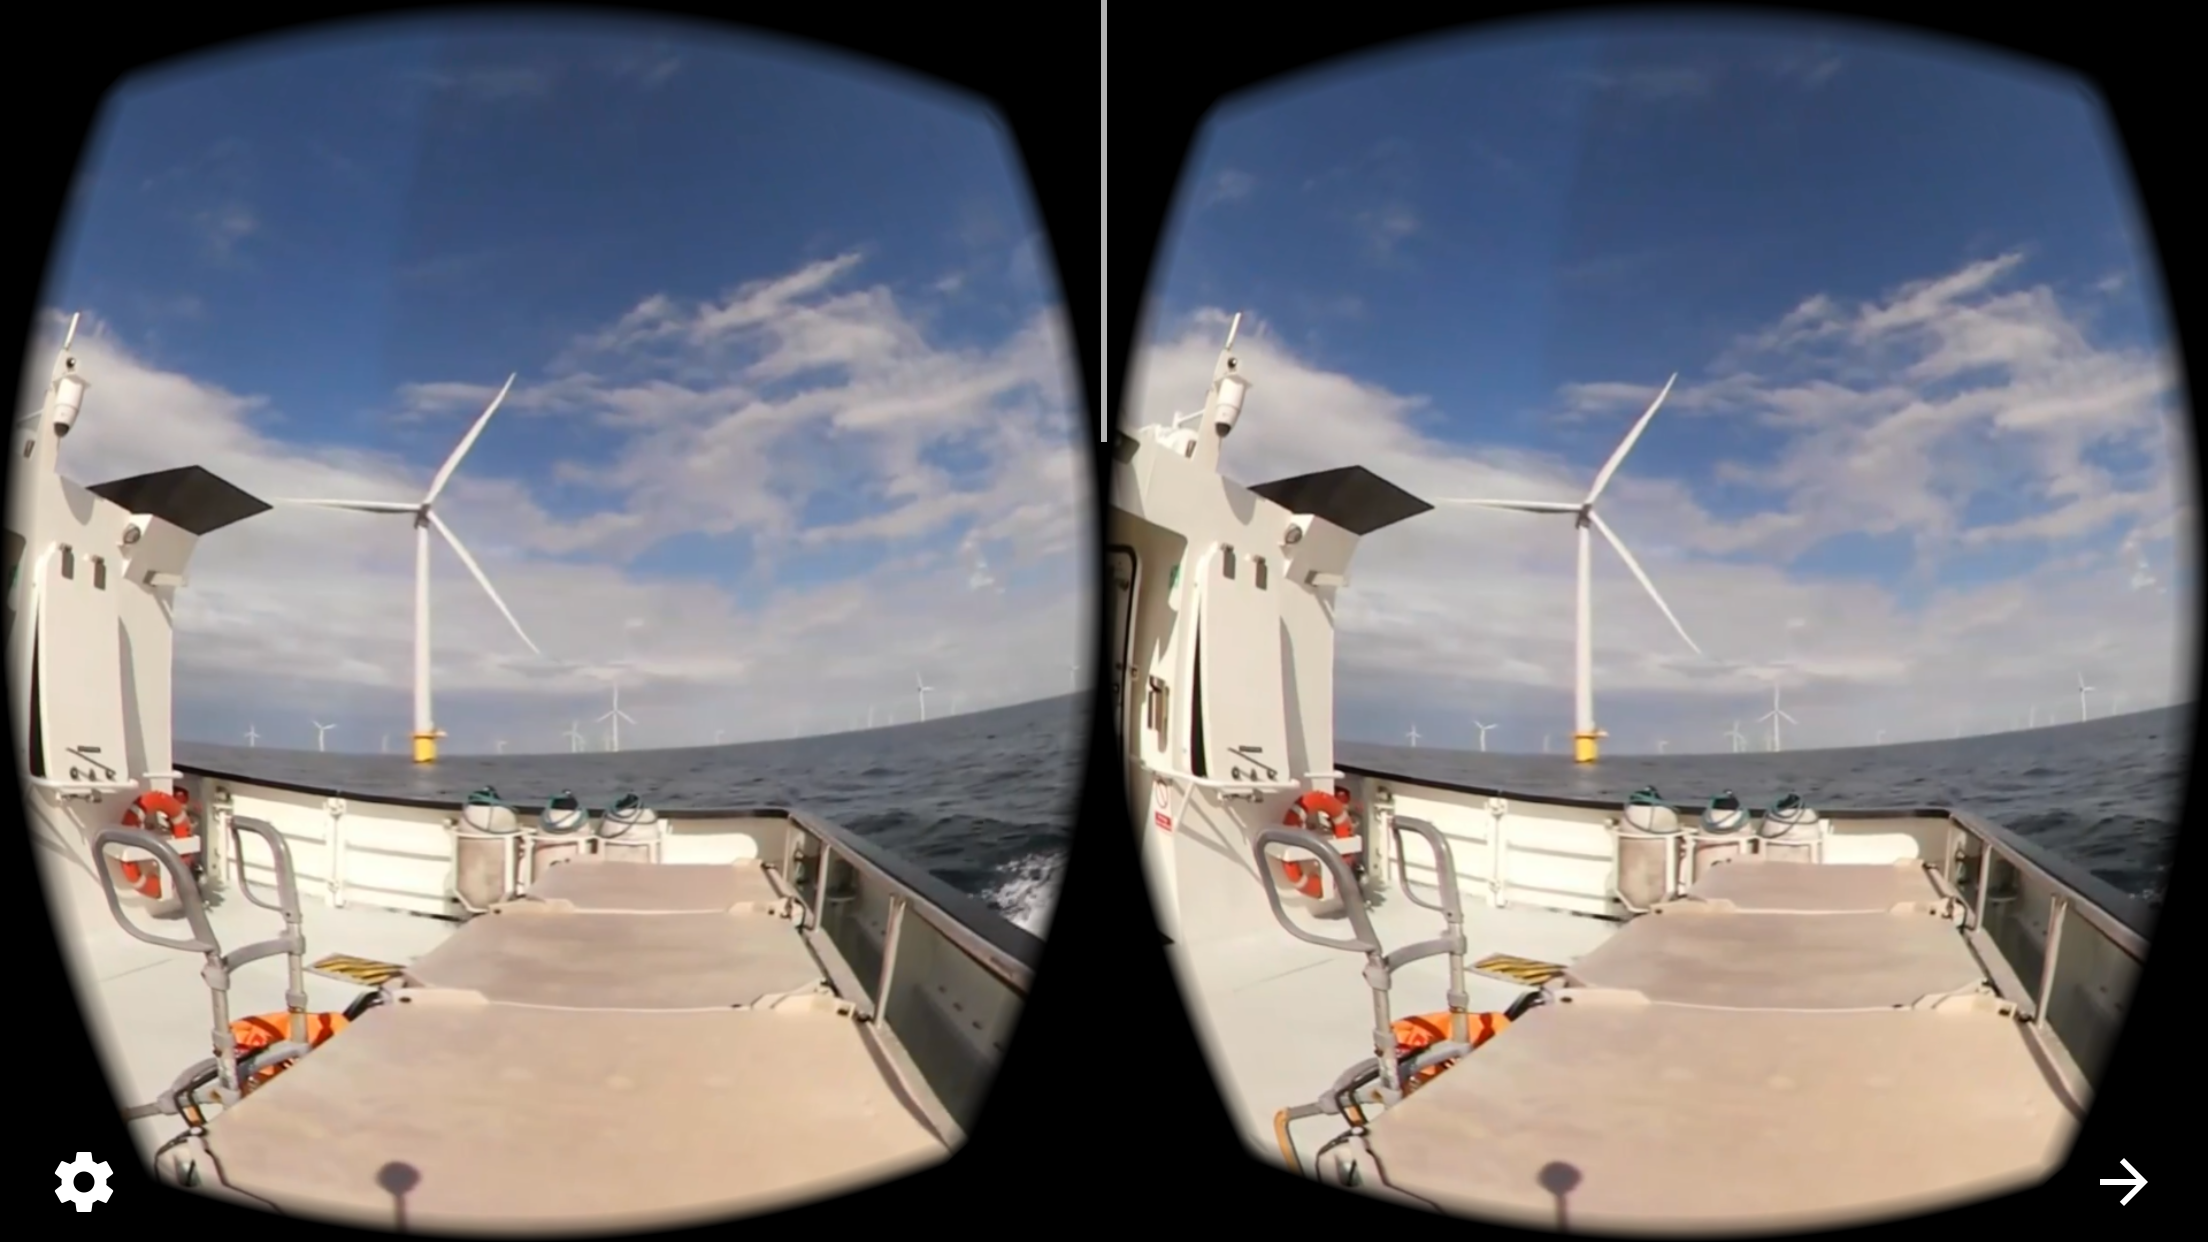 Dong's VR tour of a wind turbine on YouTube